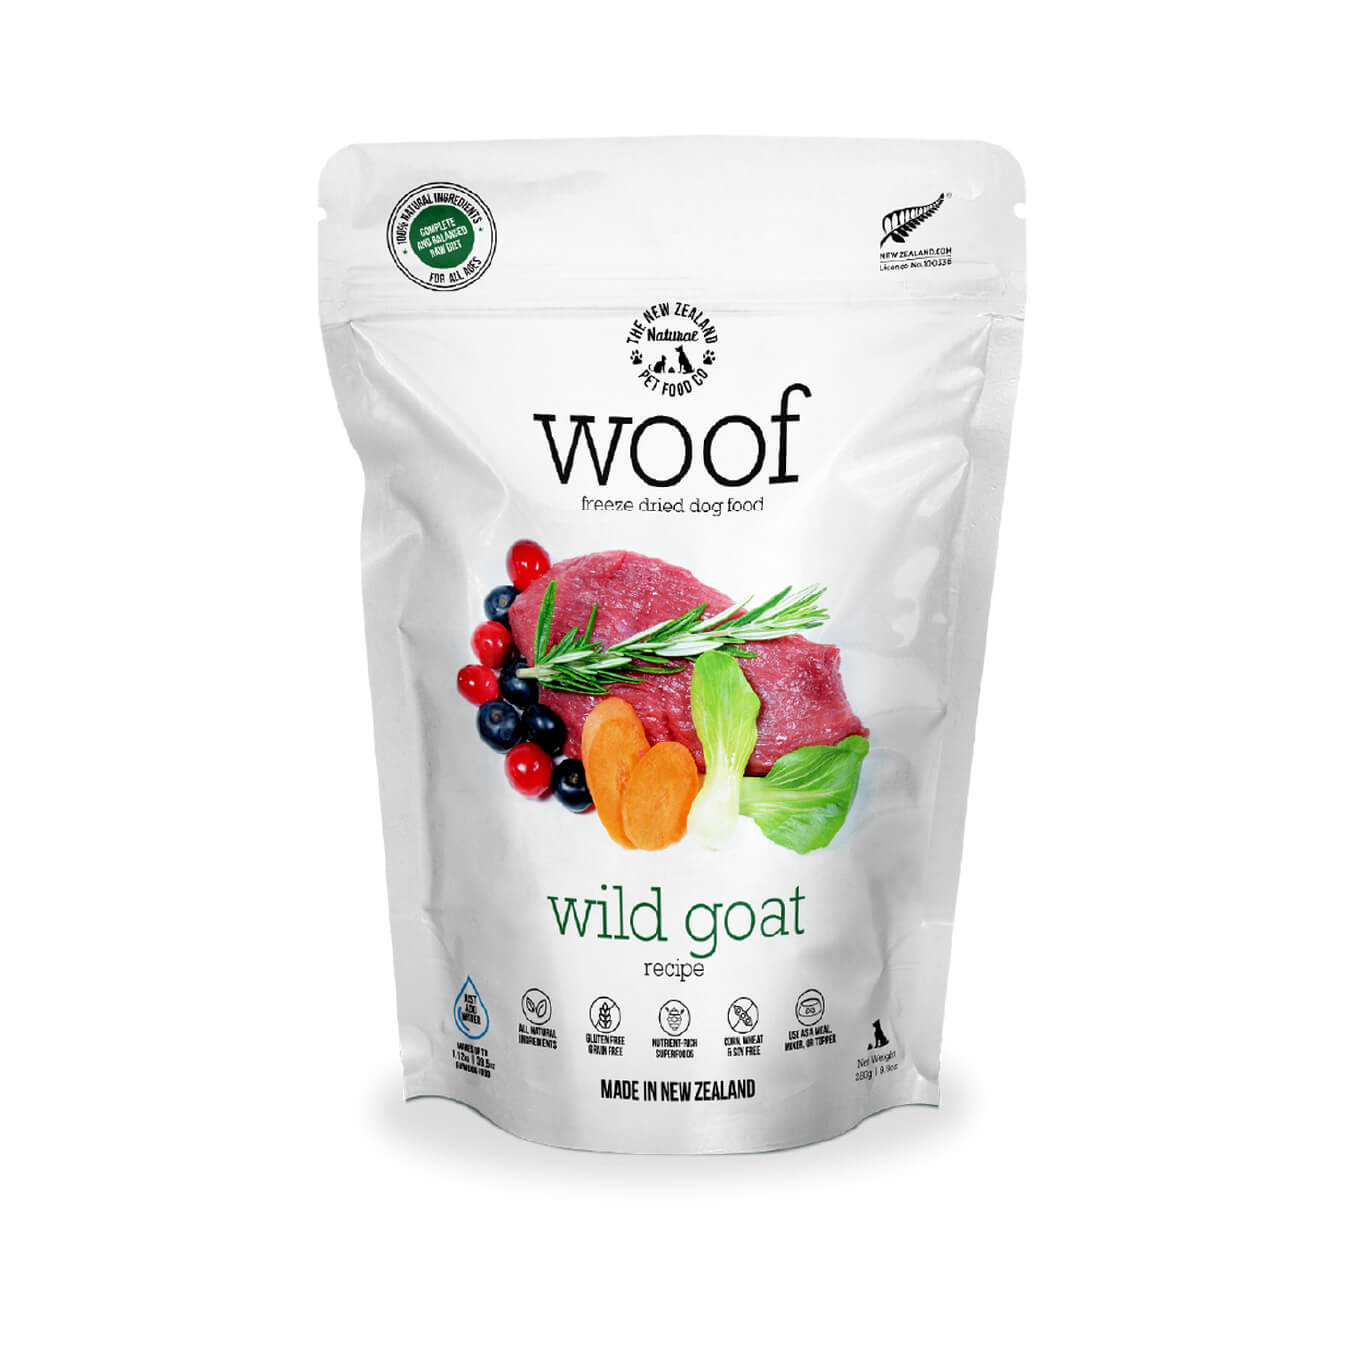 [Bundle Deal] WOOF Wild Goat Freeze-dried Dog Food | 320g/1kg - Dogs, Food, Starter Pack, WOOF - Vanillapup - Online Pet Shop